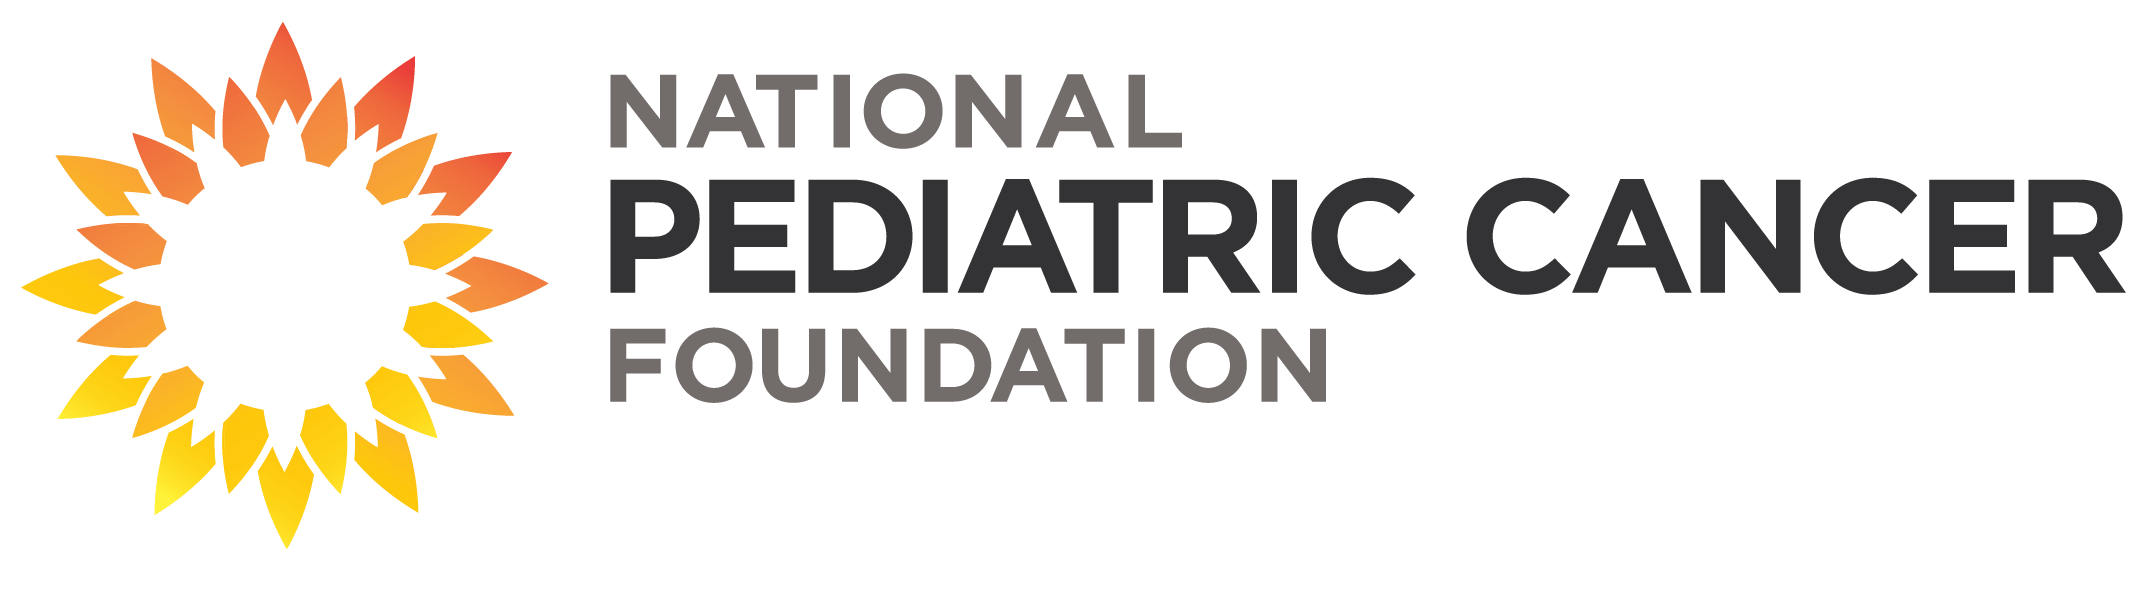 National Pediatric Cancer Foundation Invites All to Rise ...